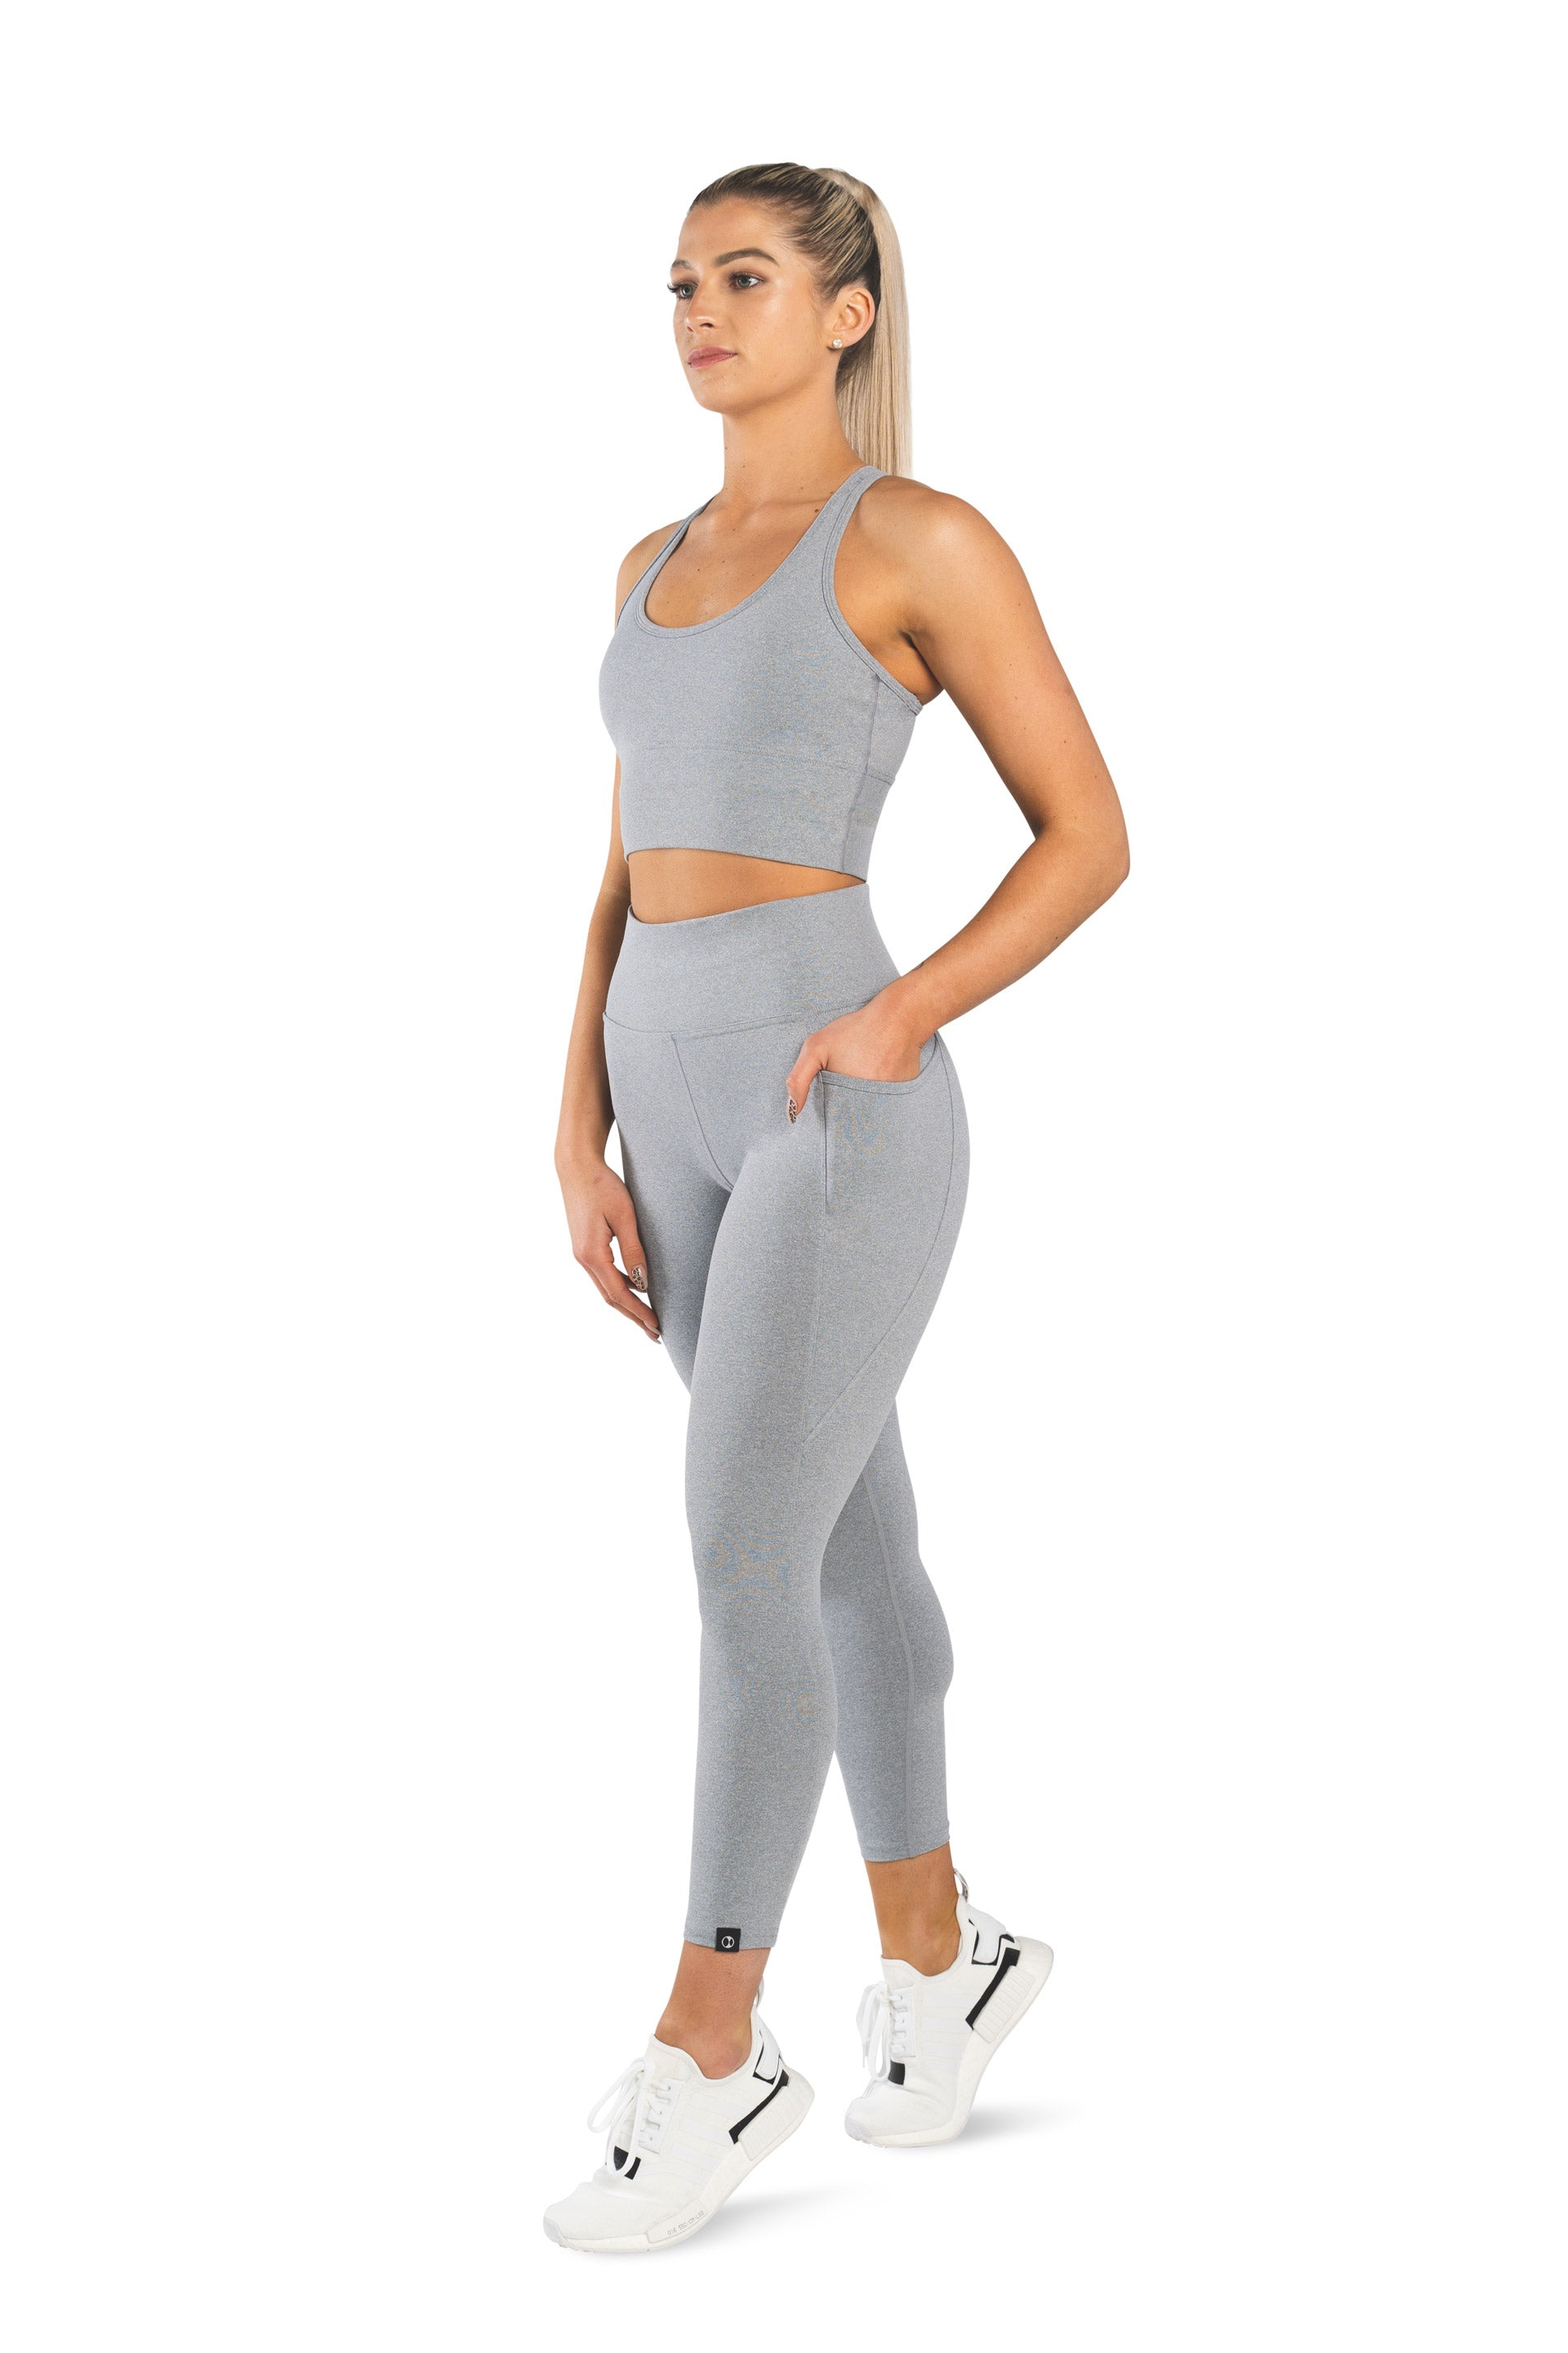 HIGH WAISTED SIDE POCKET 7/8 TIGHT - DOVE GREY MARL - PRE ORDER